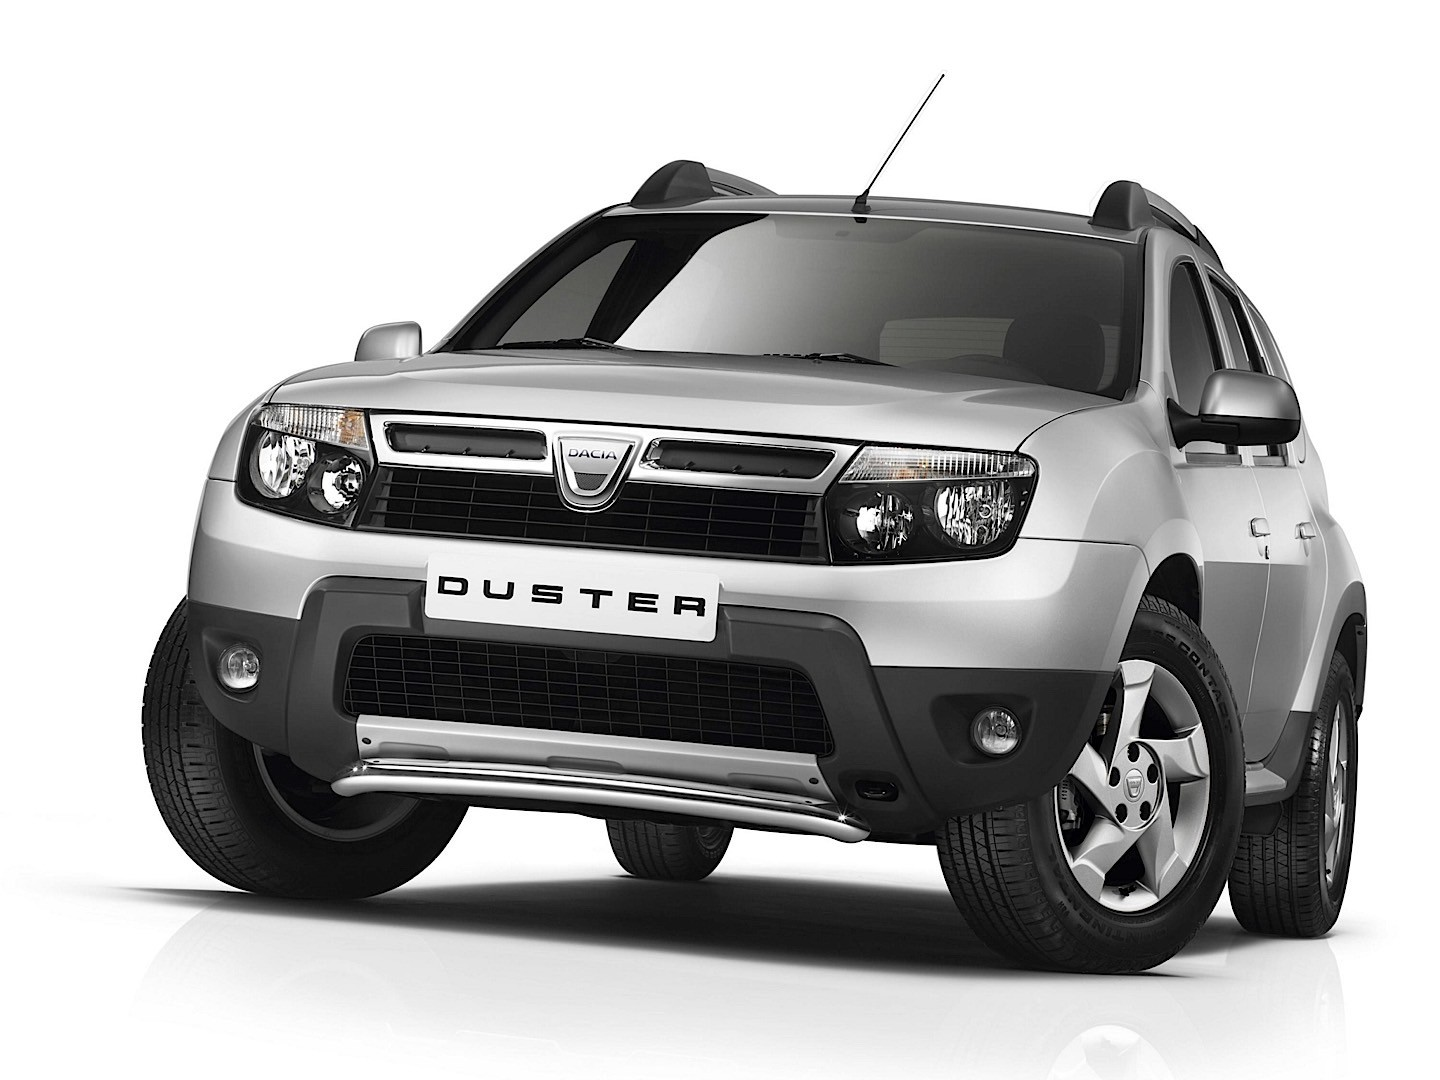 Dacia duster specs photos 2010 2011 2012 2013 for Dacia duster specifications